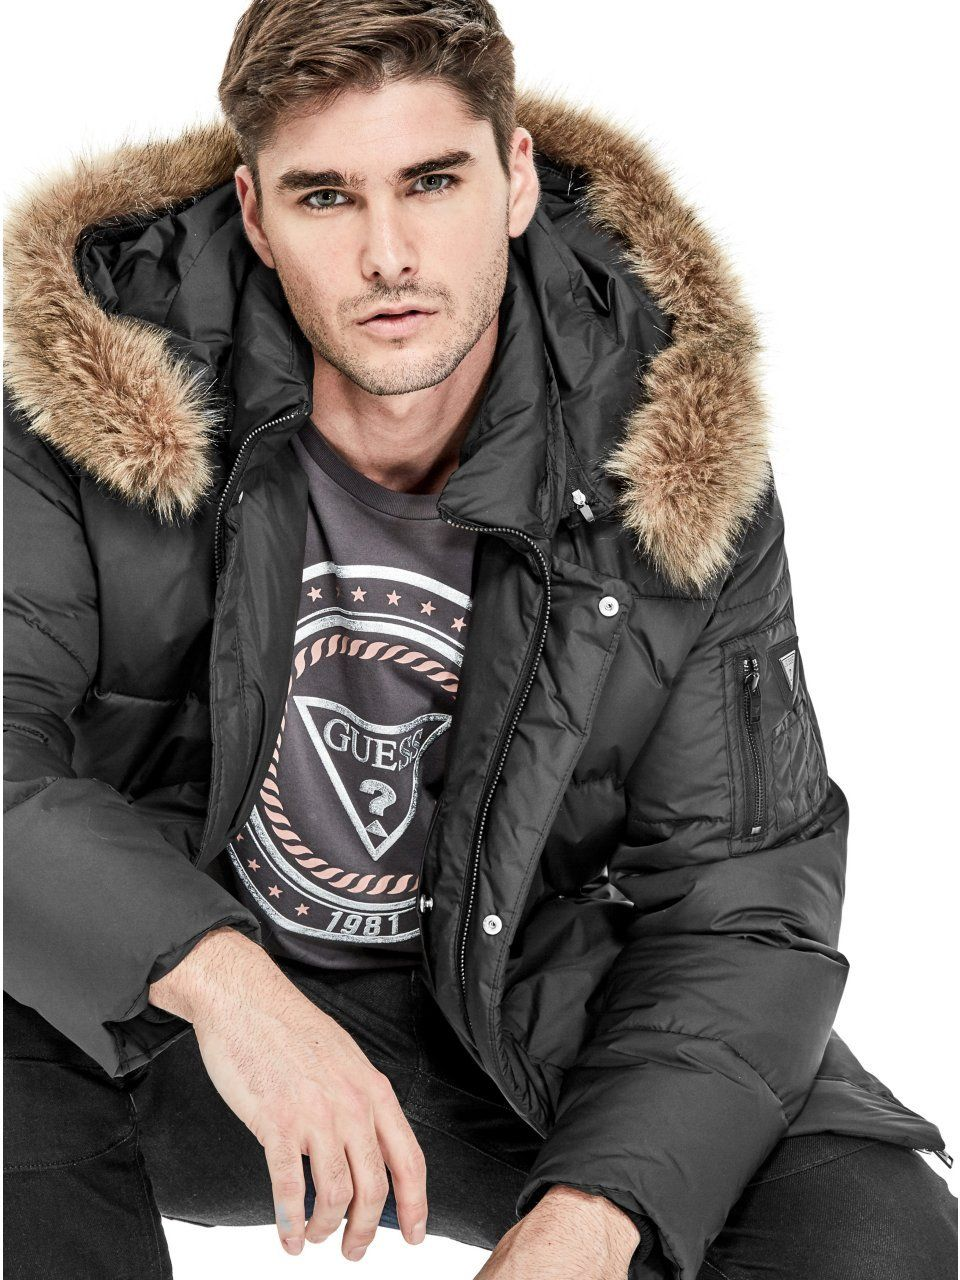 Guess Mens Fauxfur Hooded Puffer Jacket Details Can Be Found By Clicking On The Image This Is An Affiliate Link Jacketfo Mens Jackets Jackets Guess Men [ 1280 x 960 Pixel ]